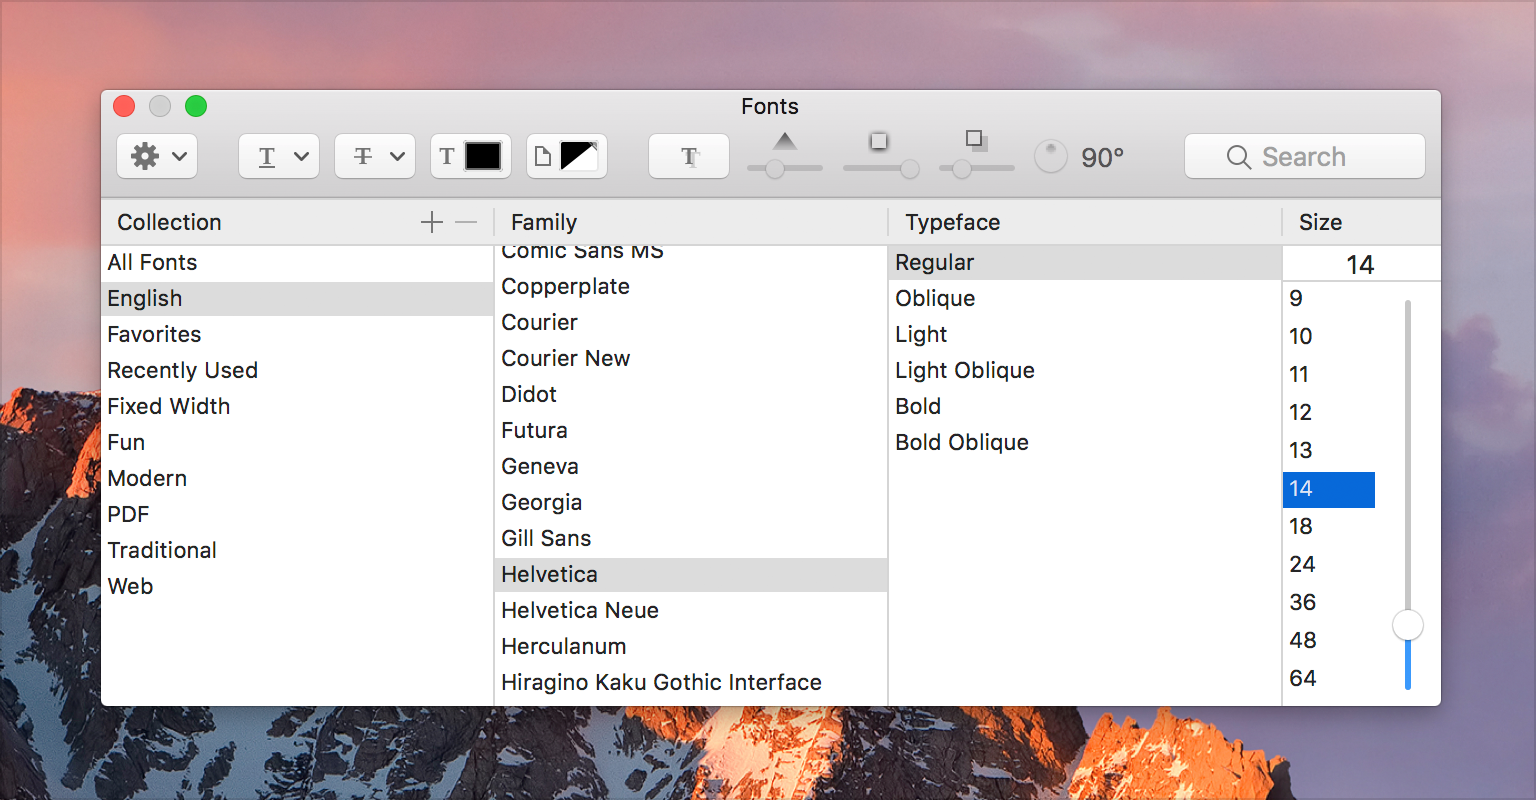 Typography - Visual Design - macOS - Human Interface Guidelines